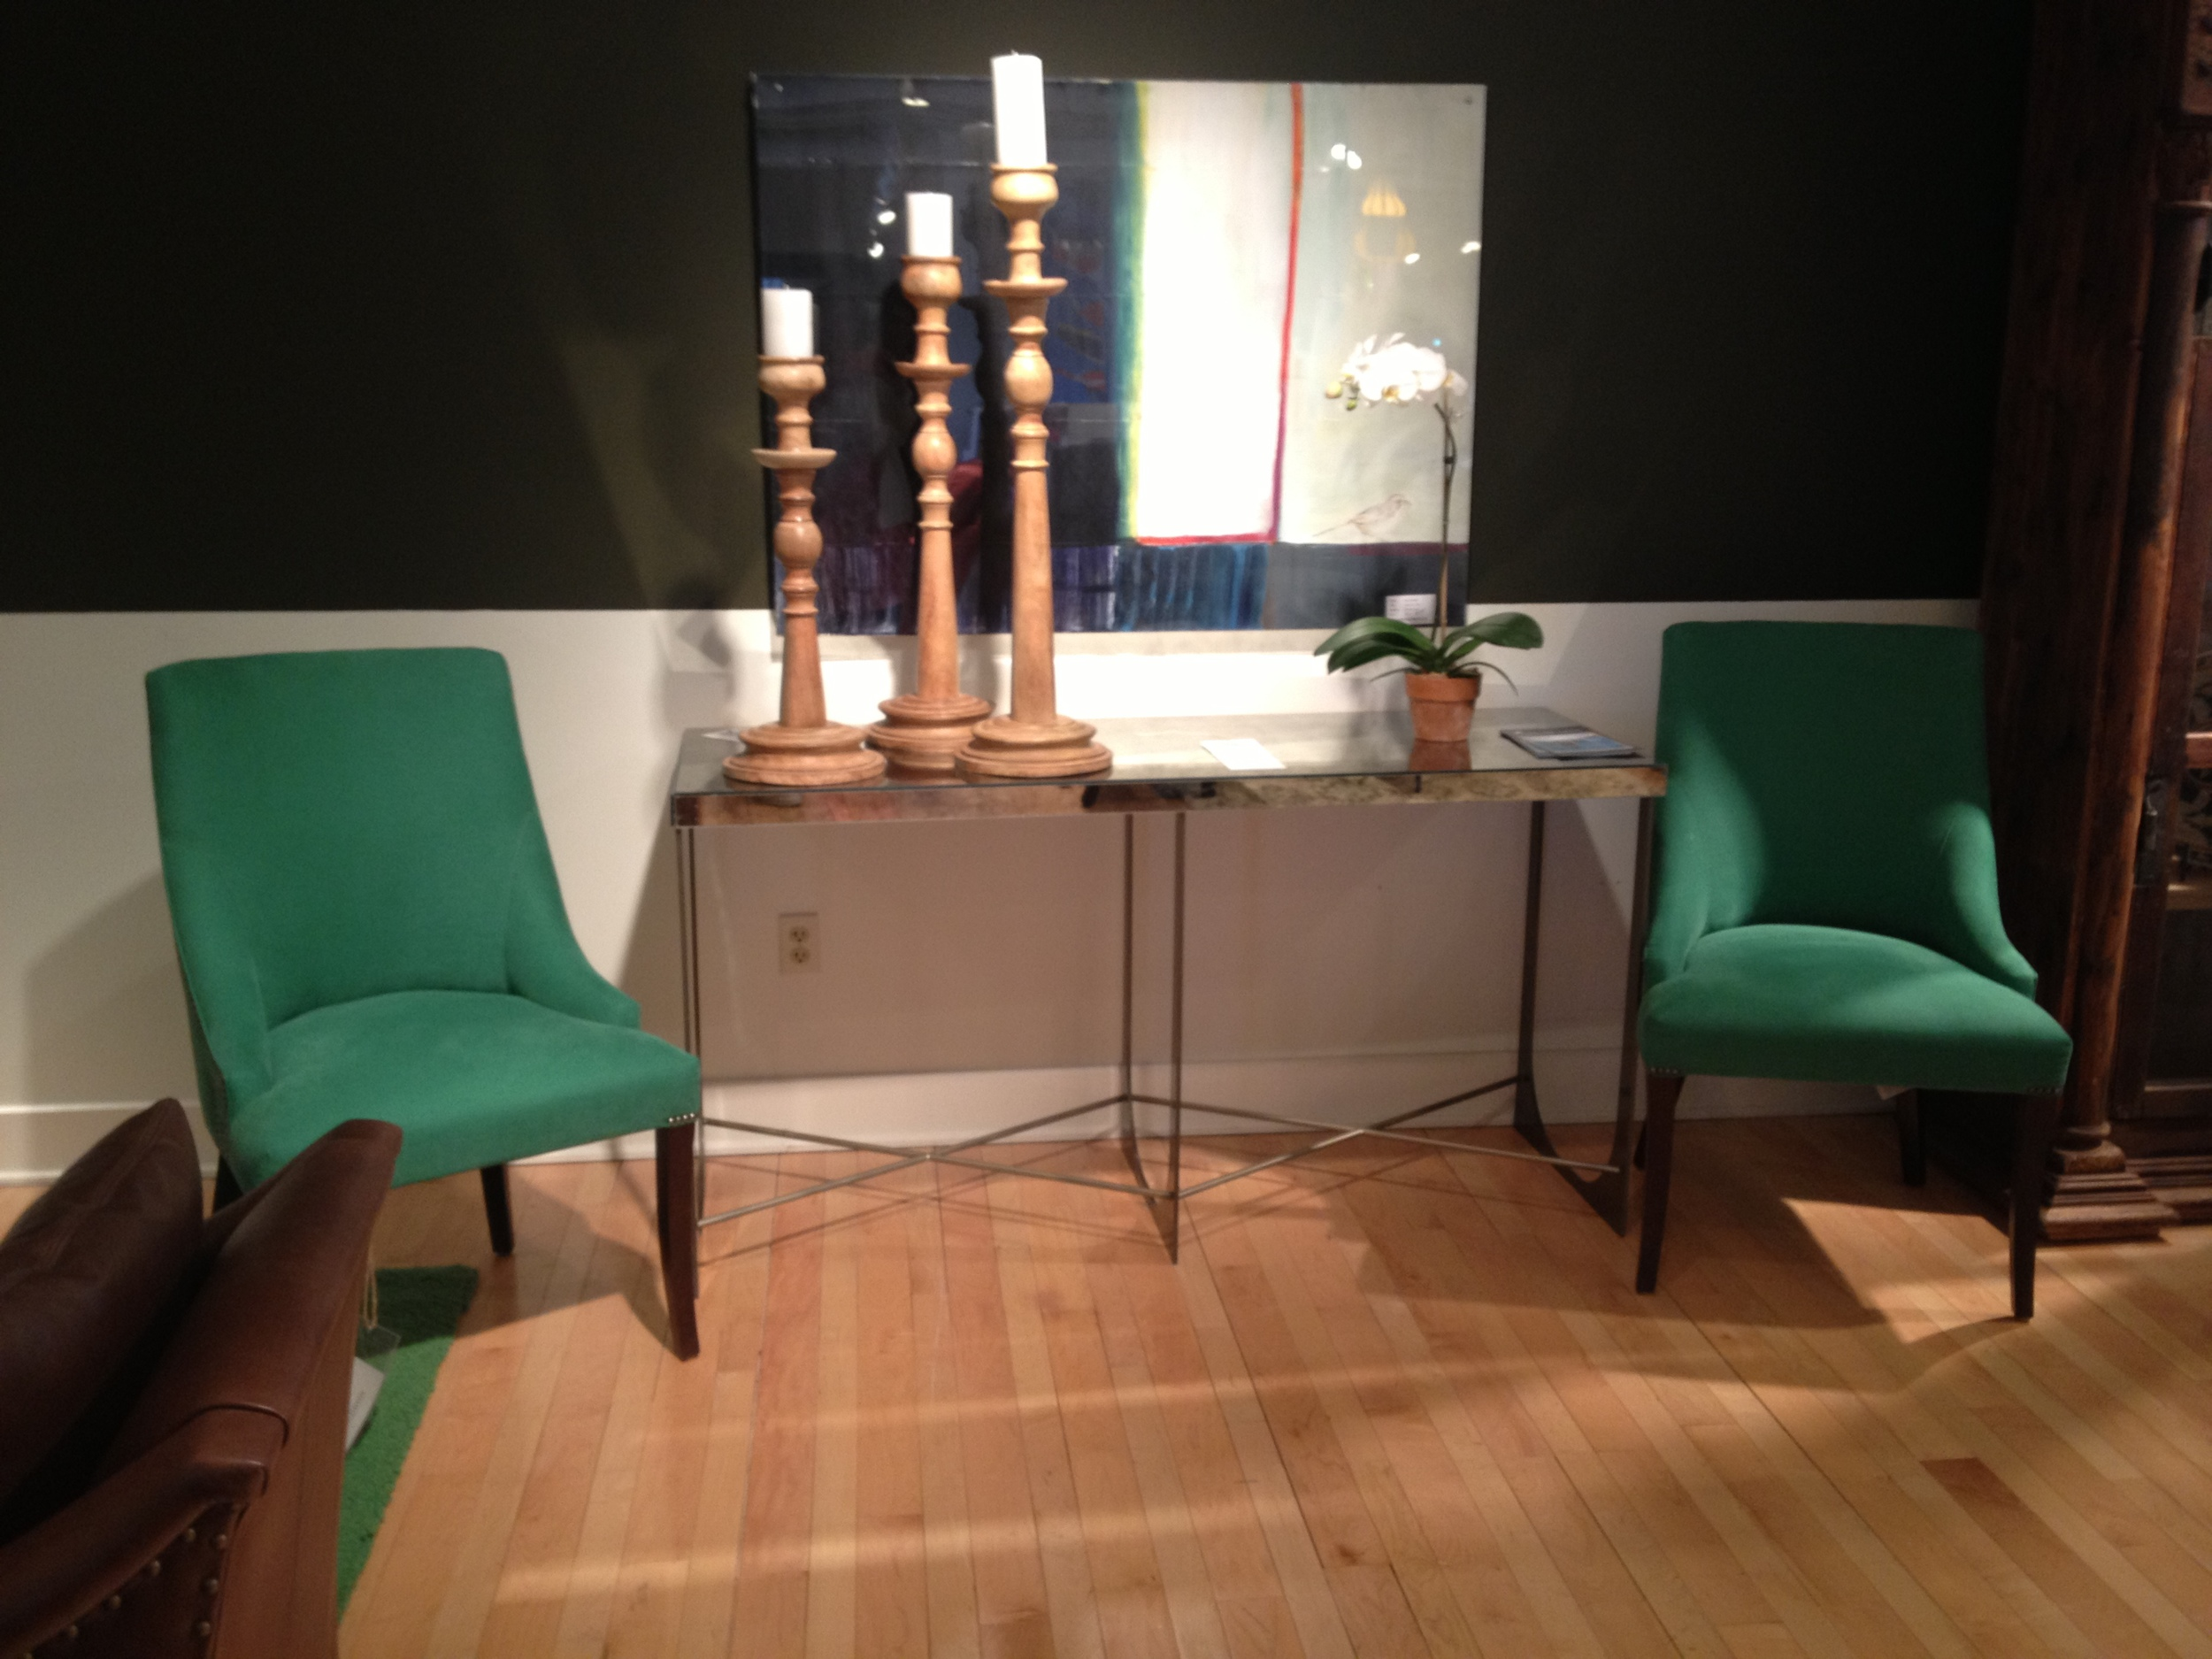 New dining room chairs showcase my favorite kelly green color. Although it can be done in any fabric.